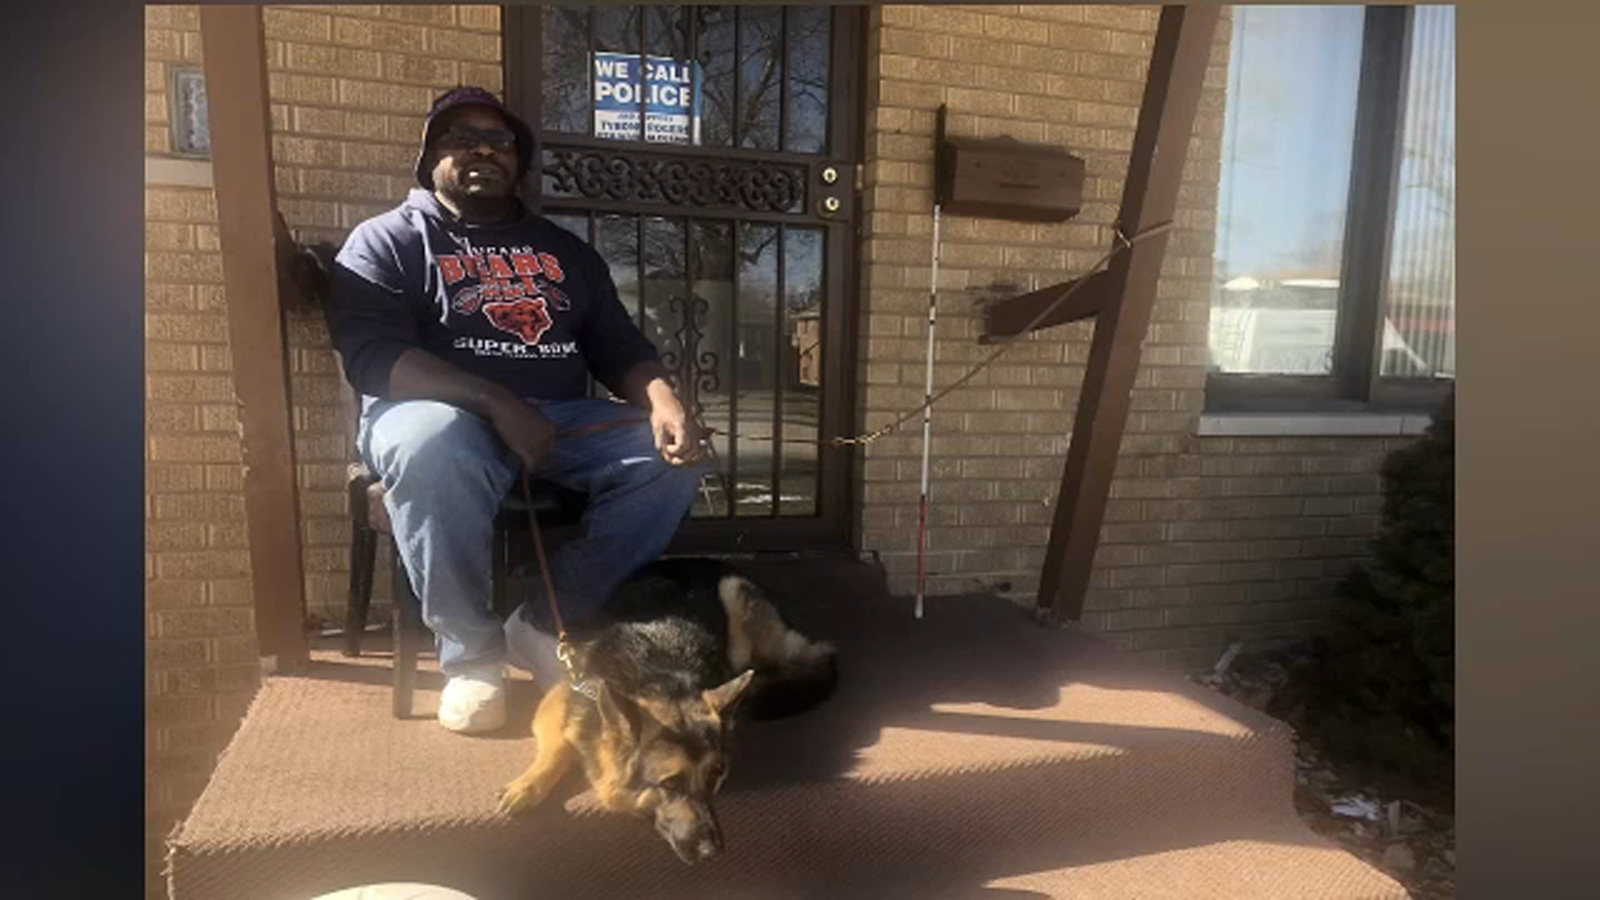 Blind man pleads for return of guide dog stolen from his backyard: 'He's a good boy'